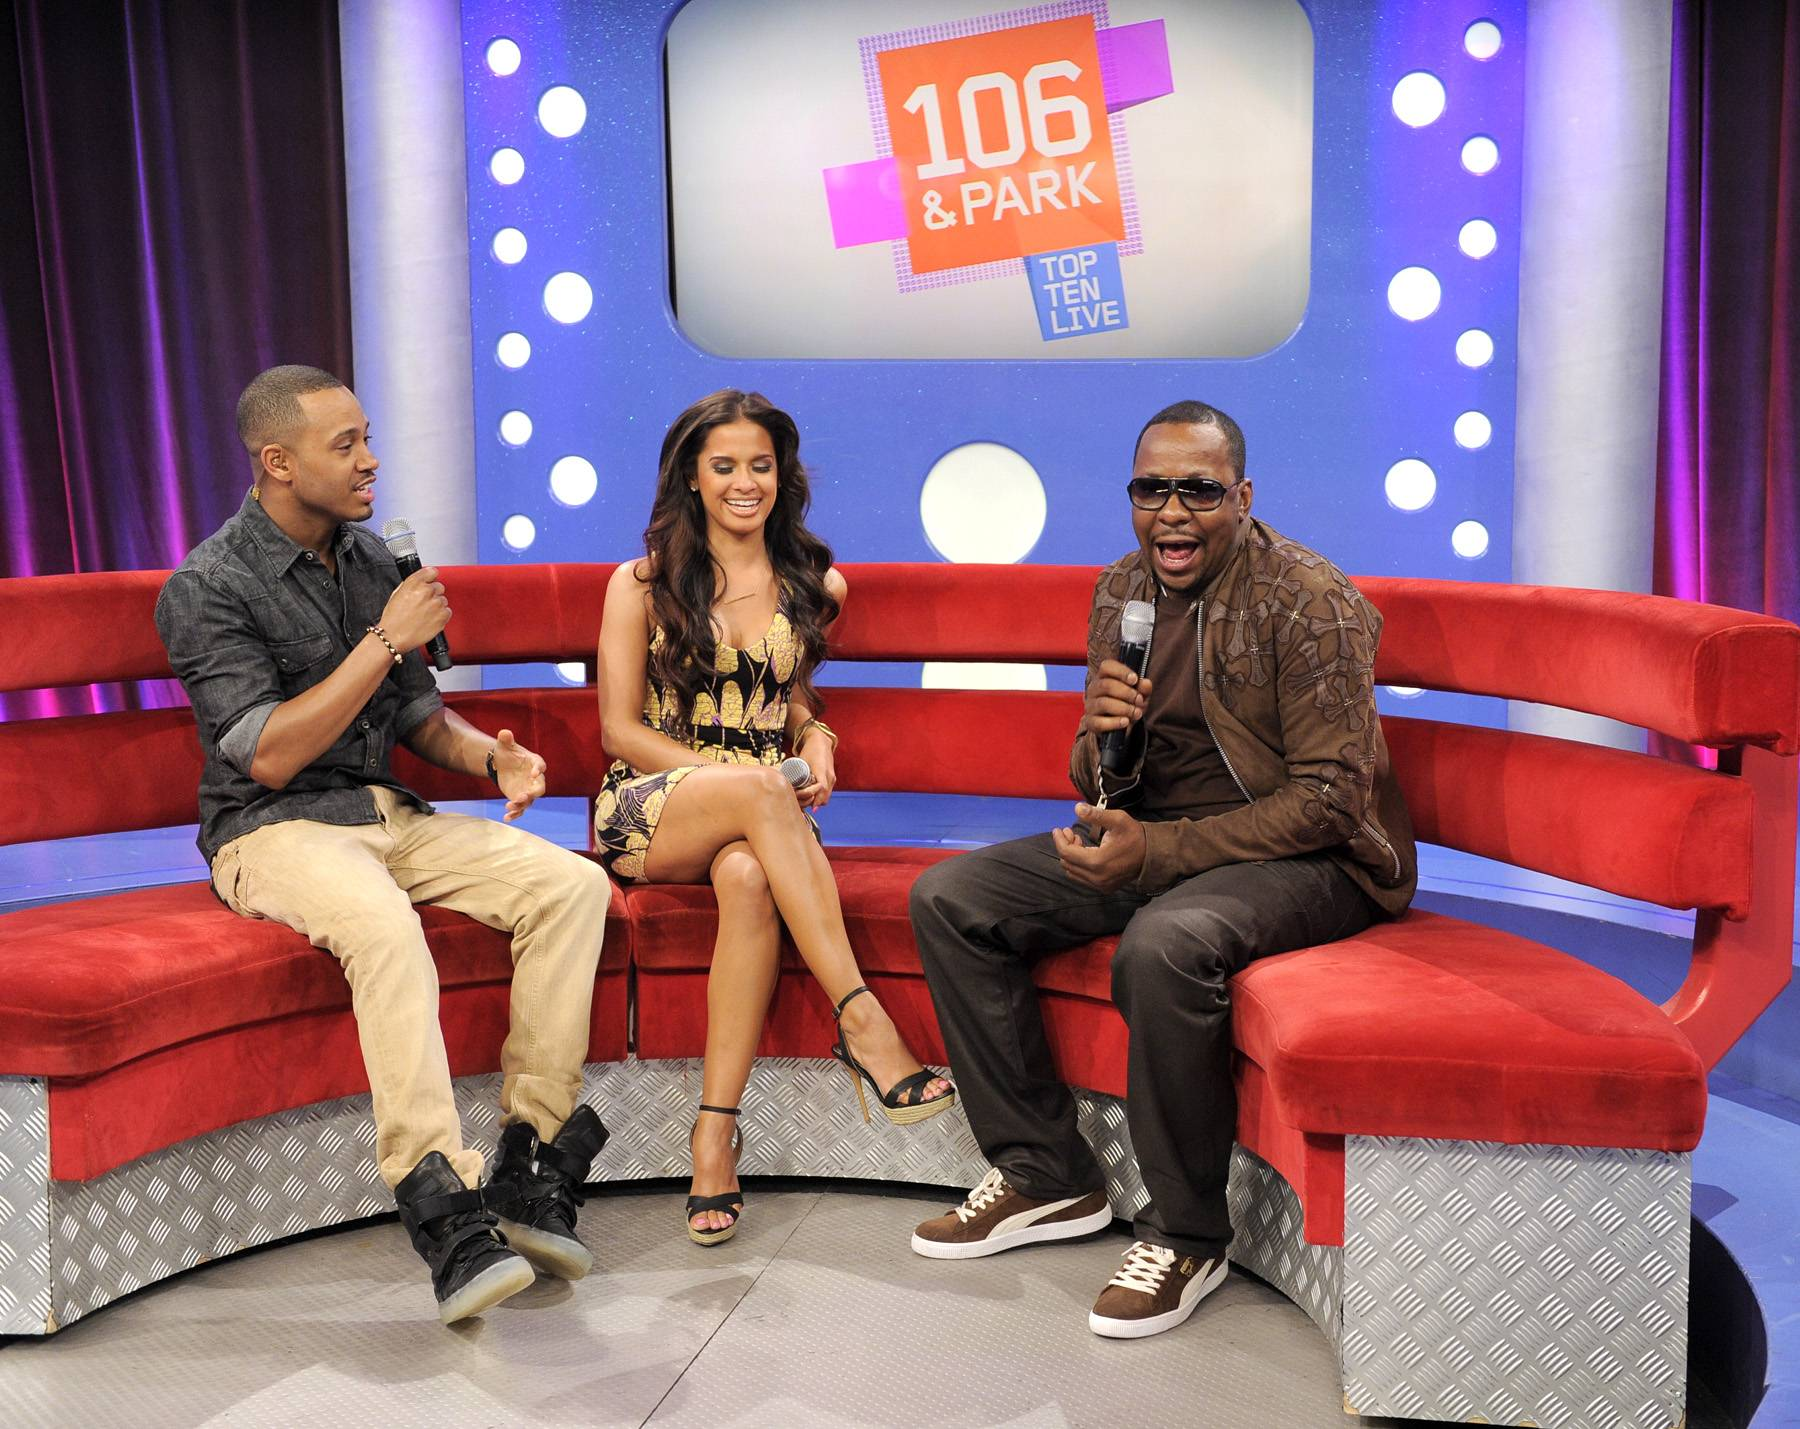 Love My Music - Brown says Johnny Gill and Bobby Brown Jr are featured on the album at106 & Park, May 29, 2012. (Photo: John Ricard / BET)